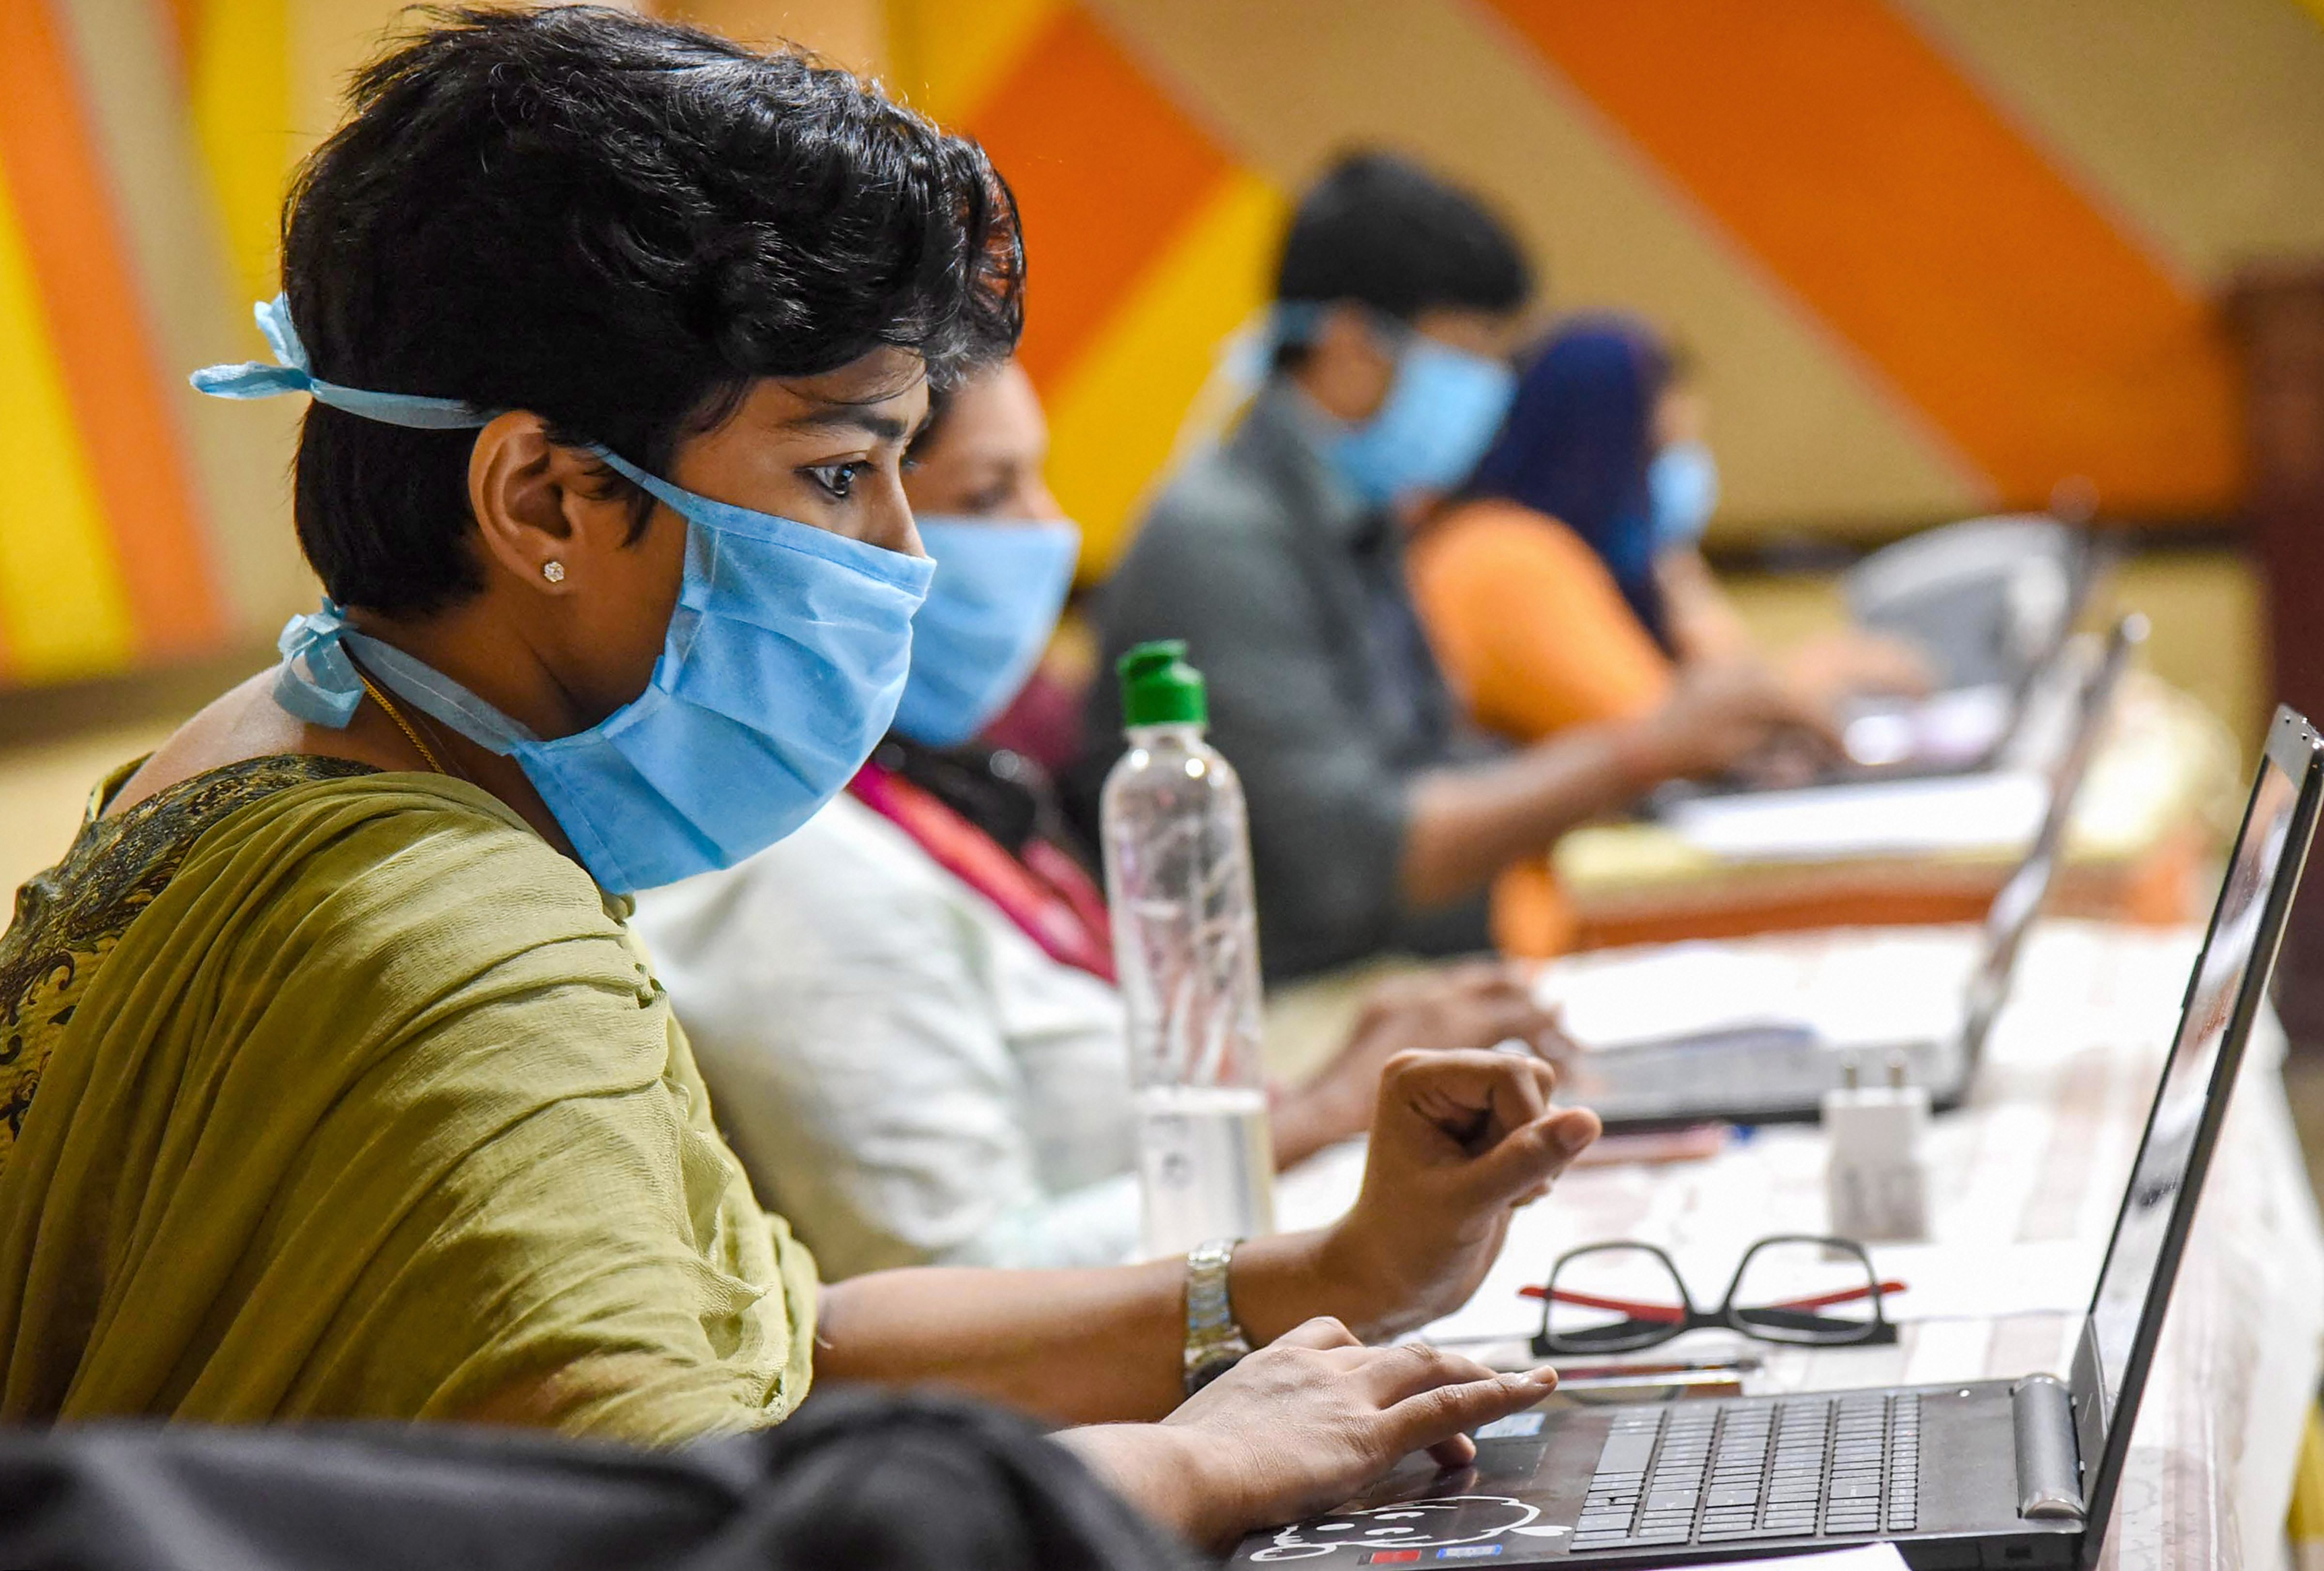 Employees of Health Tele Helpline center wearing face masks are seen working during a nationwide lockdown in the wake of coronavirus pandemic, at IMA house Ernakulam District in Kochi, Saturday, April 18, 2020.